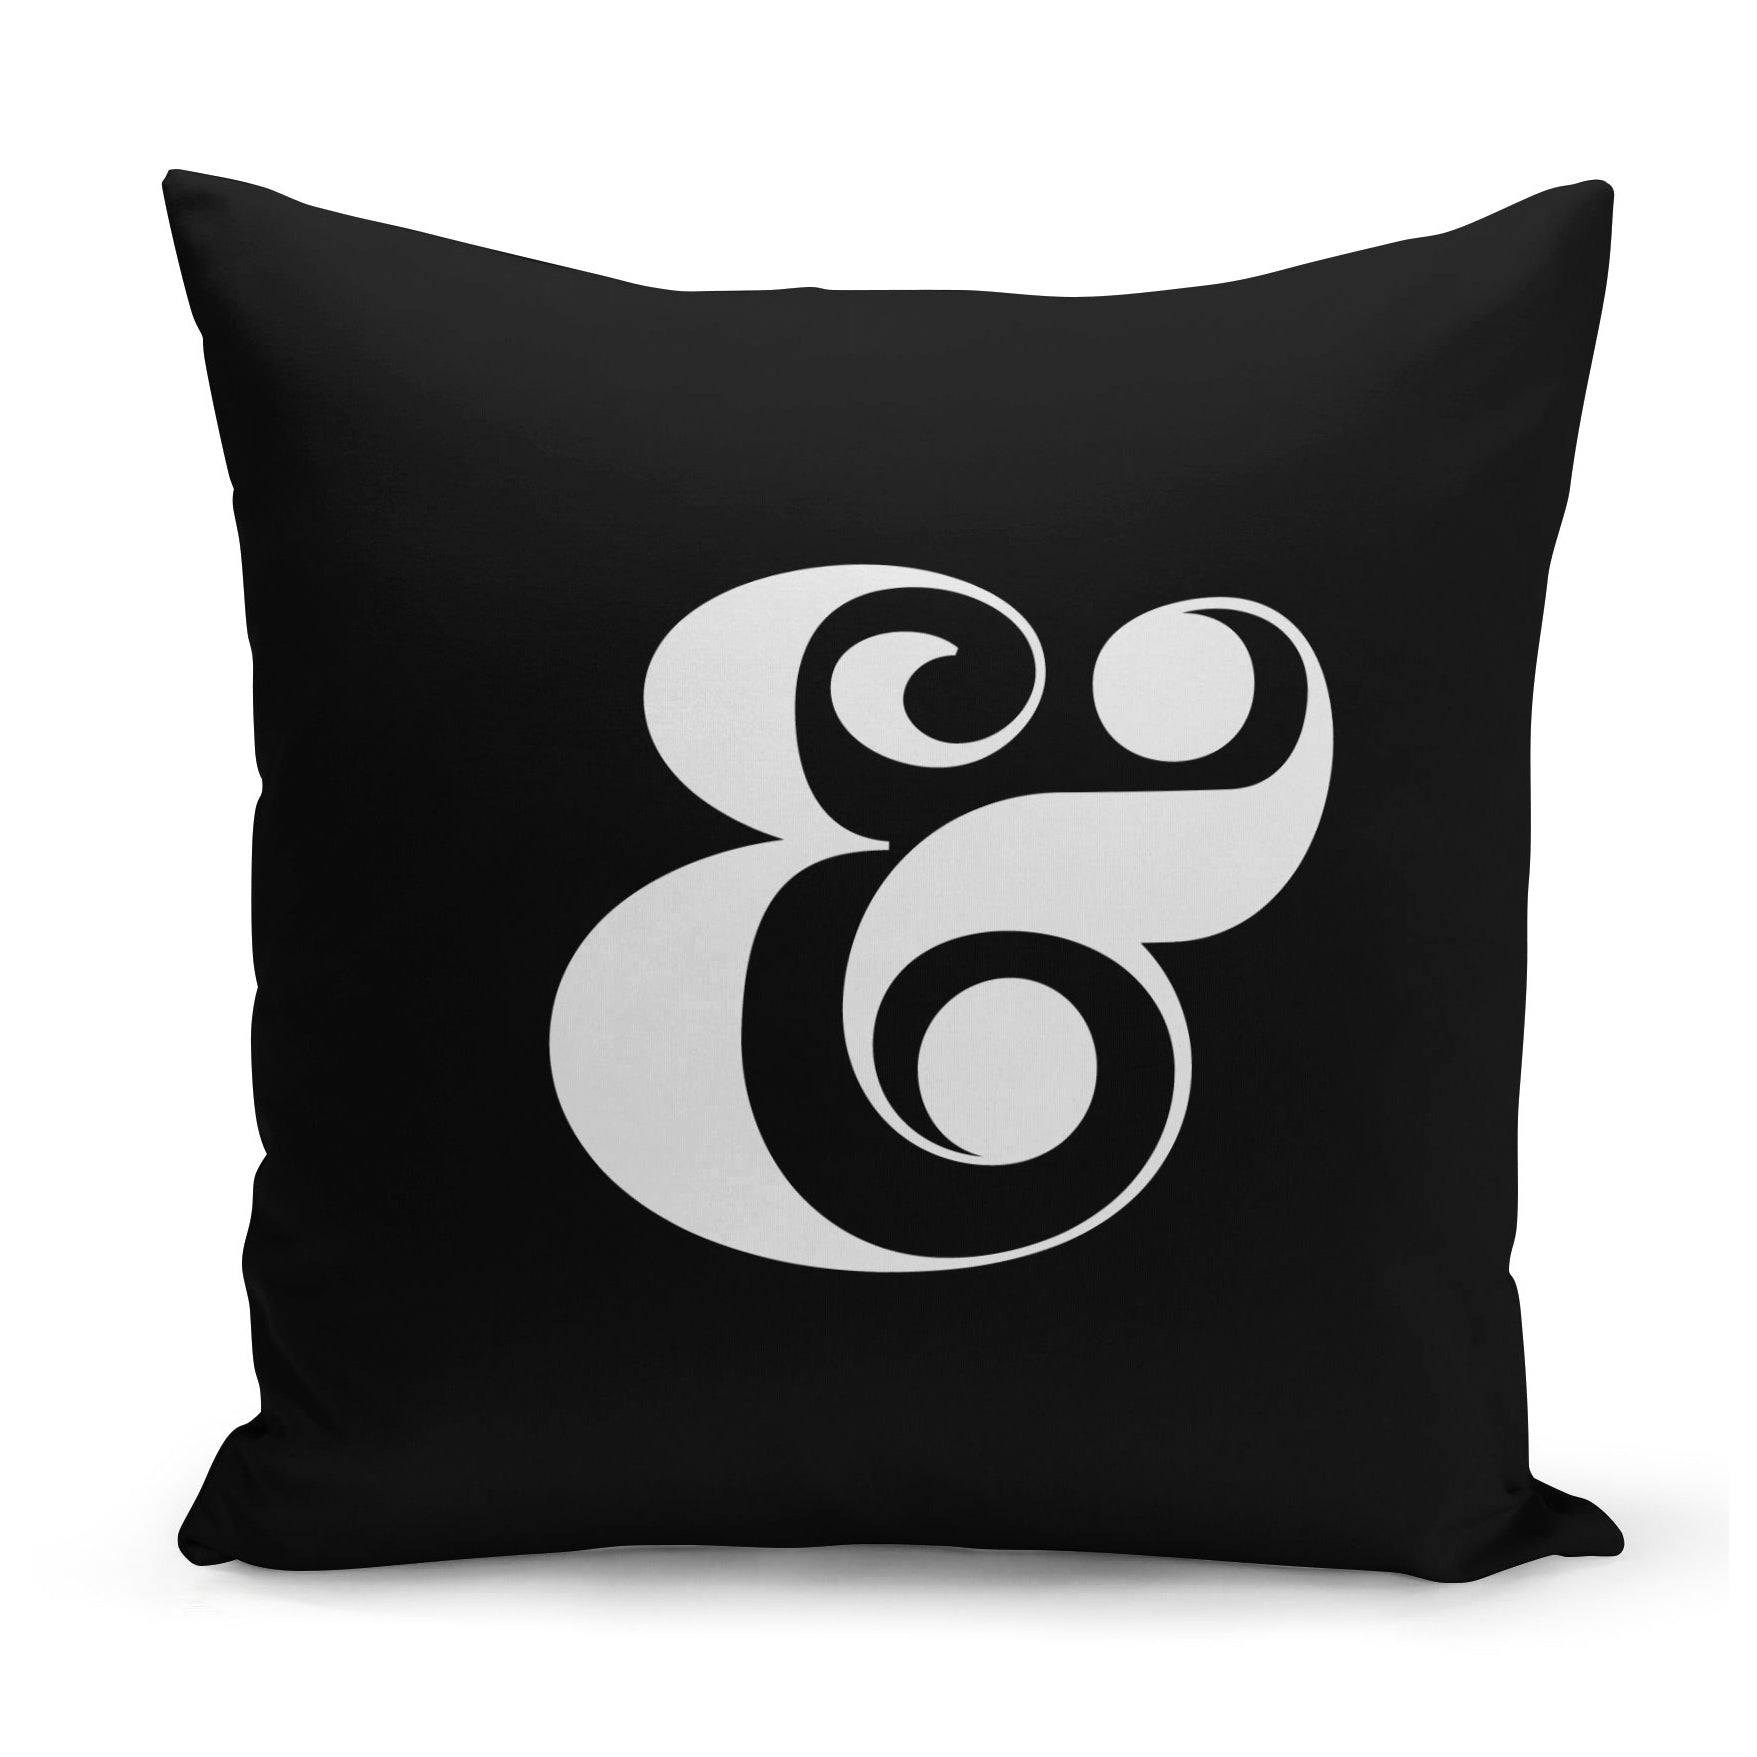 curvy typography design of an ampersand in white on a black cushion